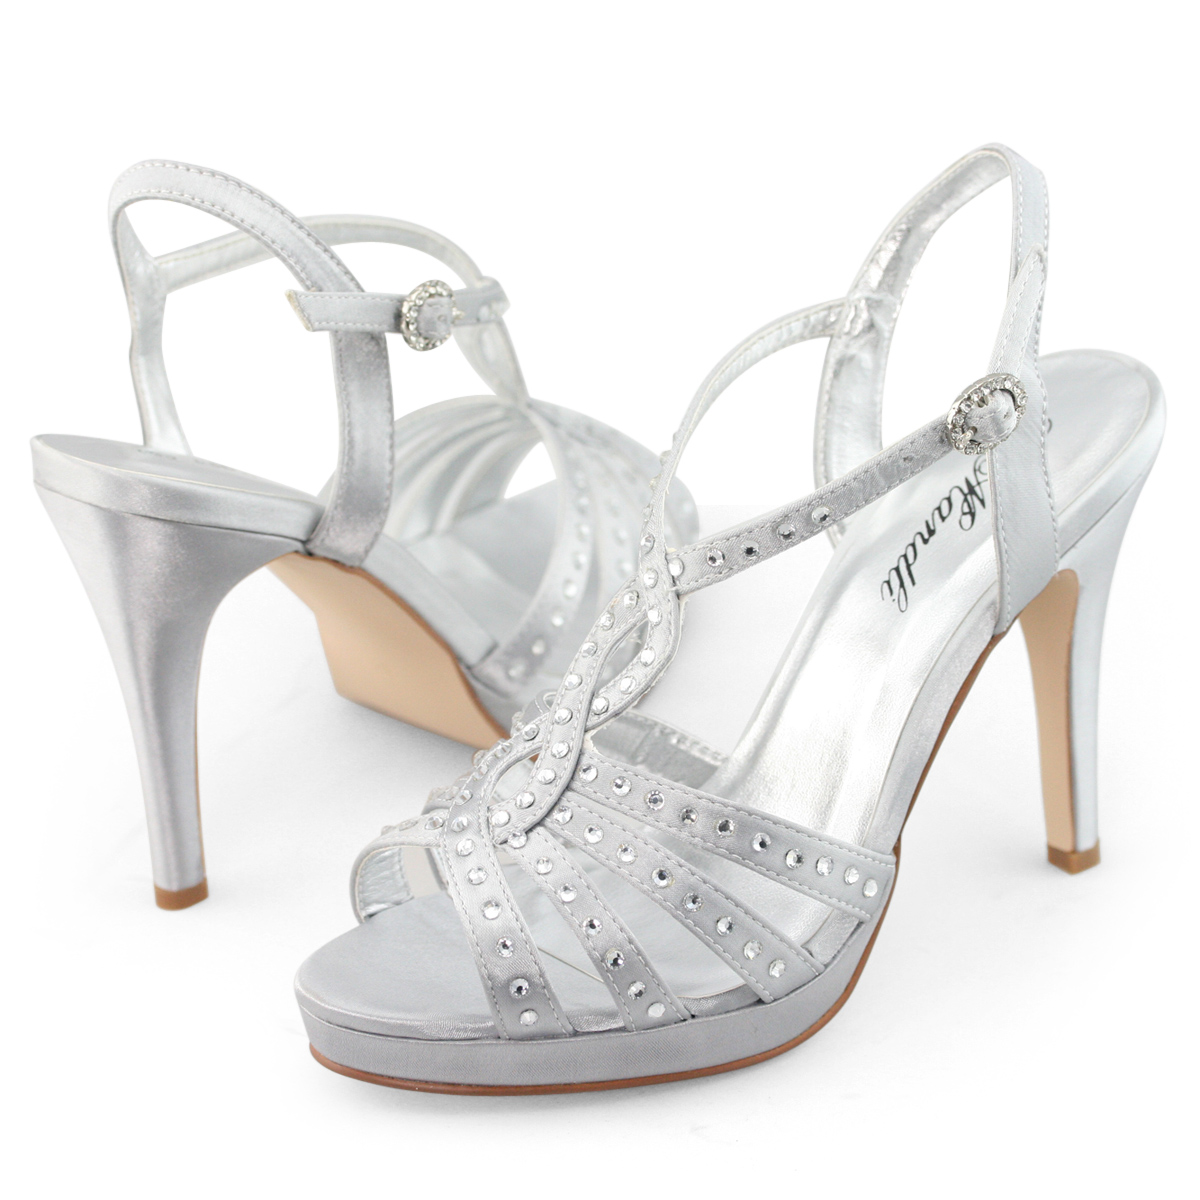 SHOEZY-2013-Fashion-Womens-Silver-Crystal-Wedding-Evening-Prom-Dress-Heels-Shoes